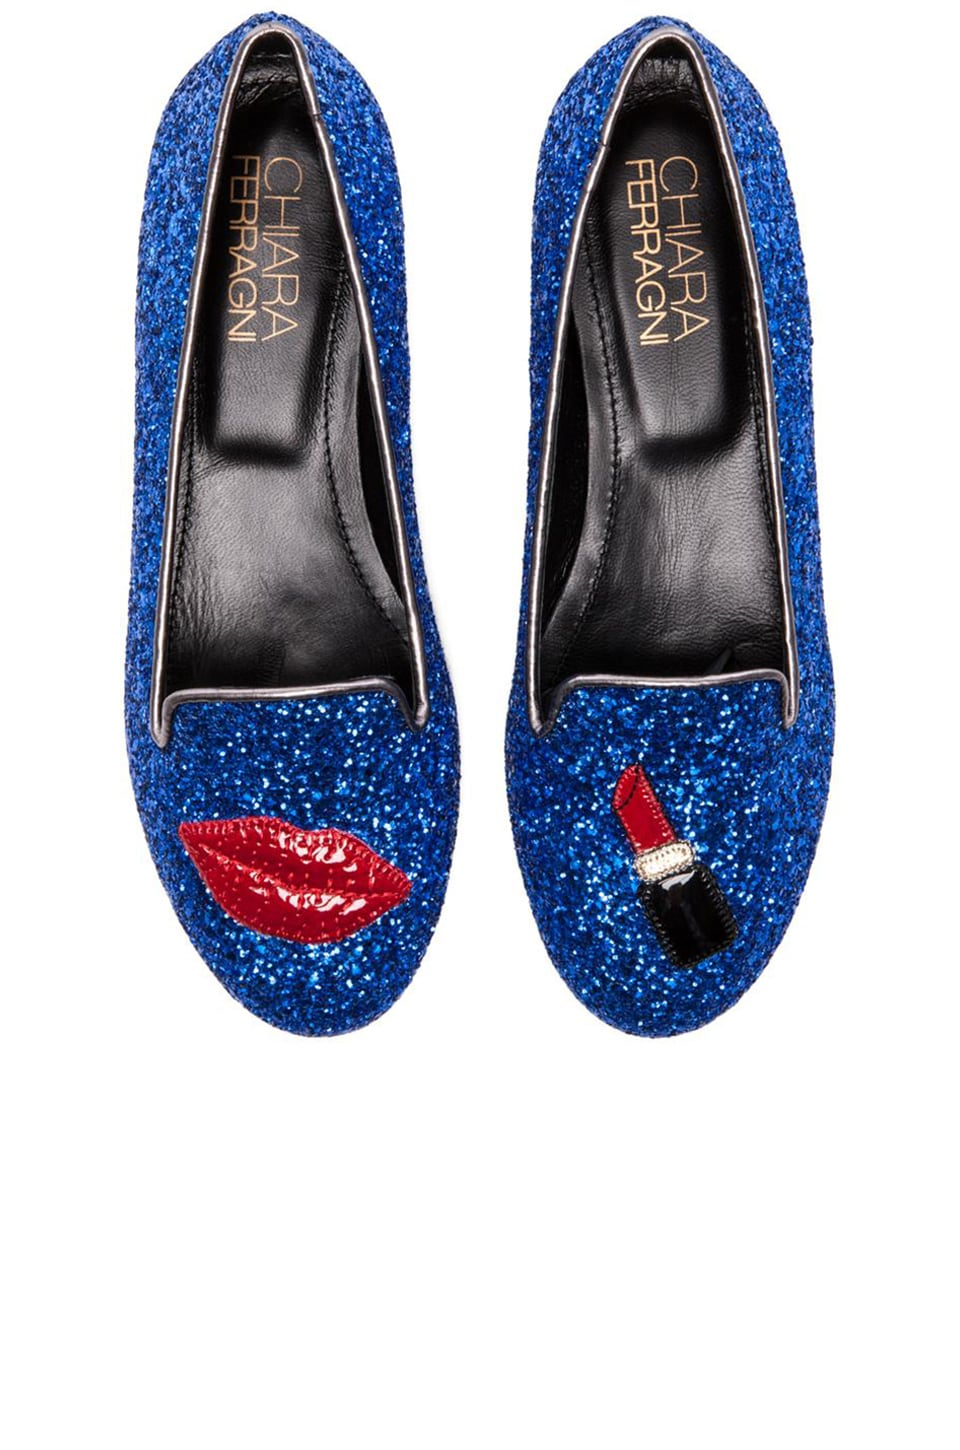 Chiara Ferragni Lips and Lipstick Flat in Blue